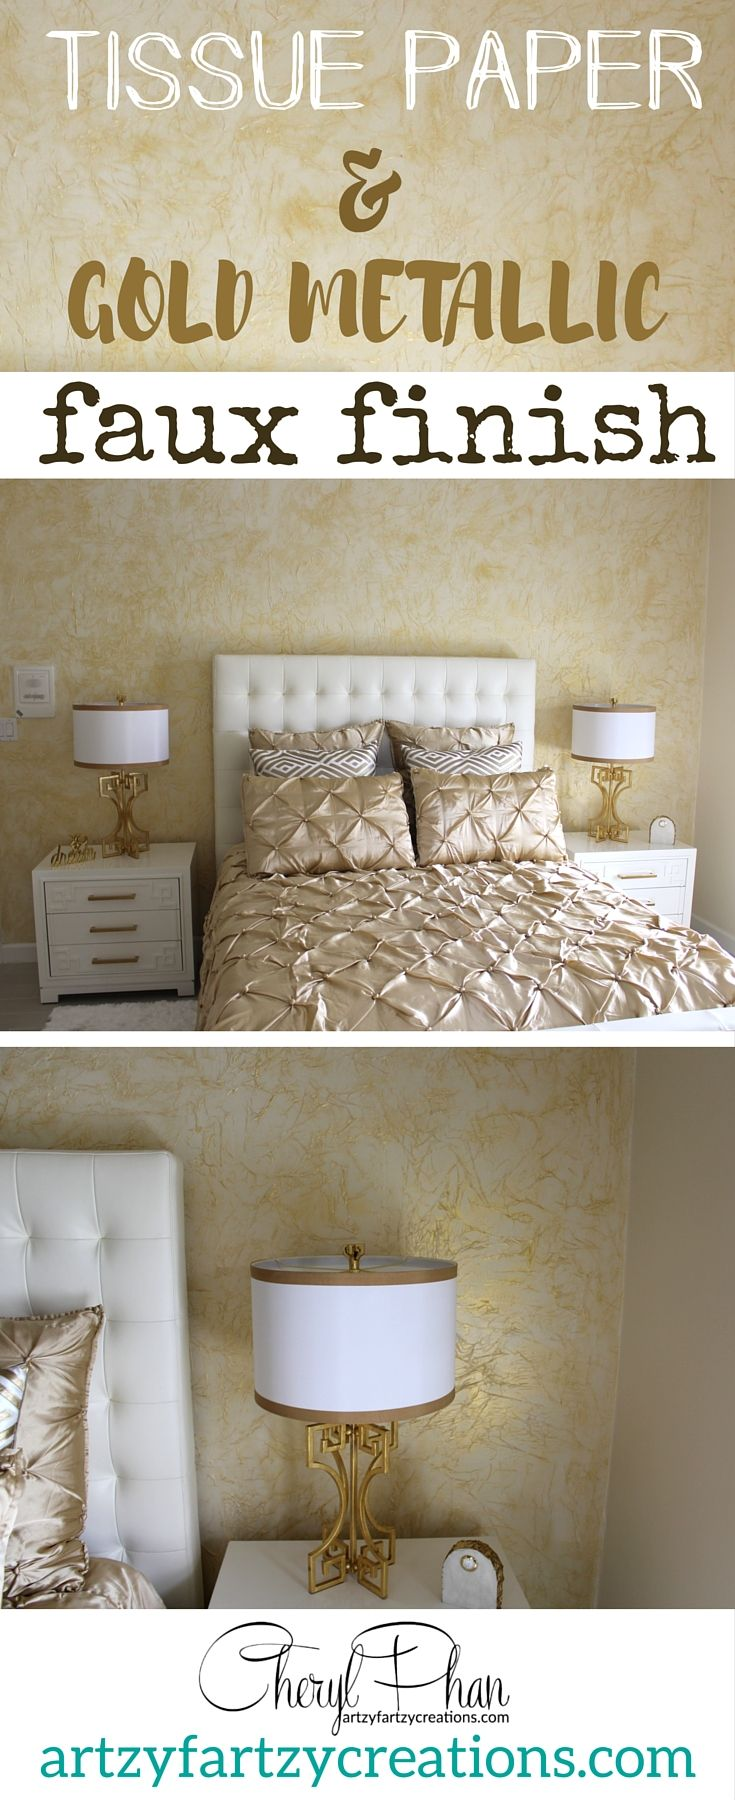 Faux Finish Gallery Diy wall painting, Wall finishes